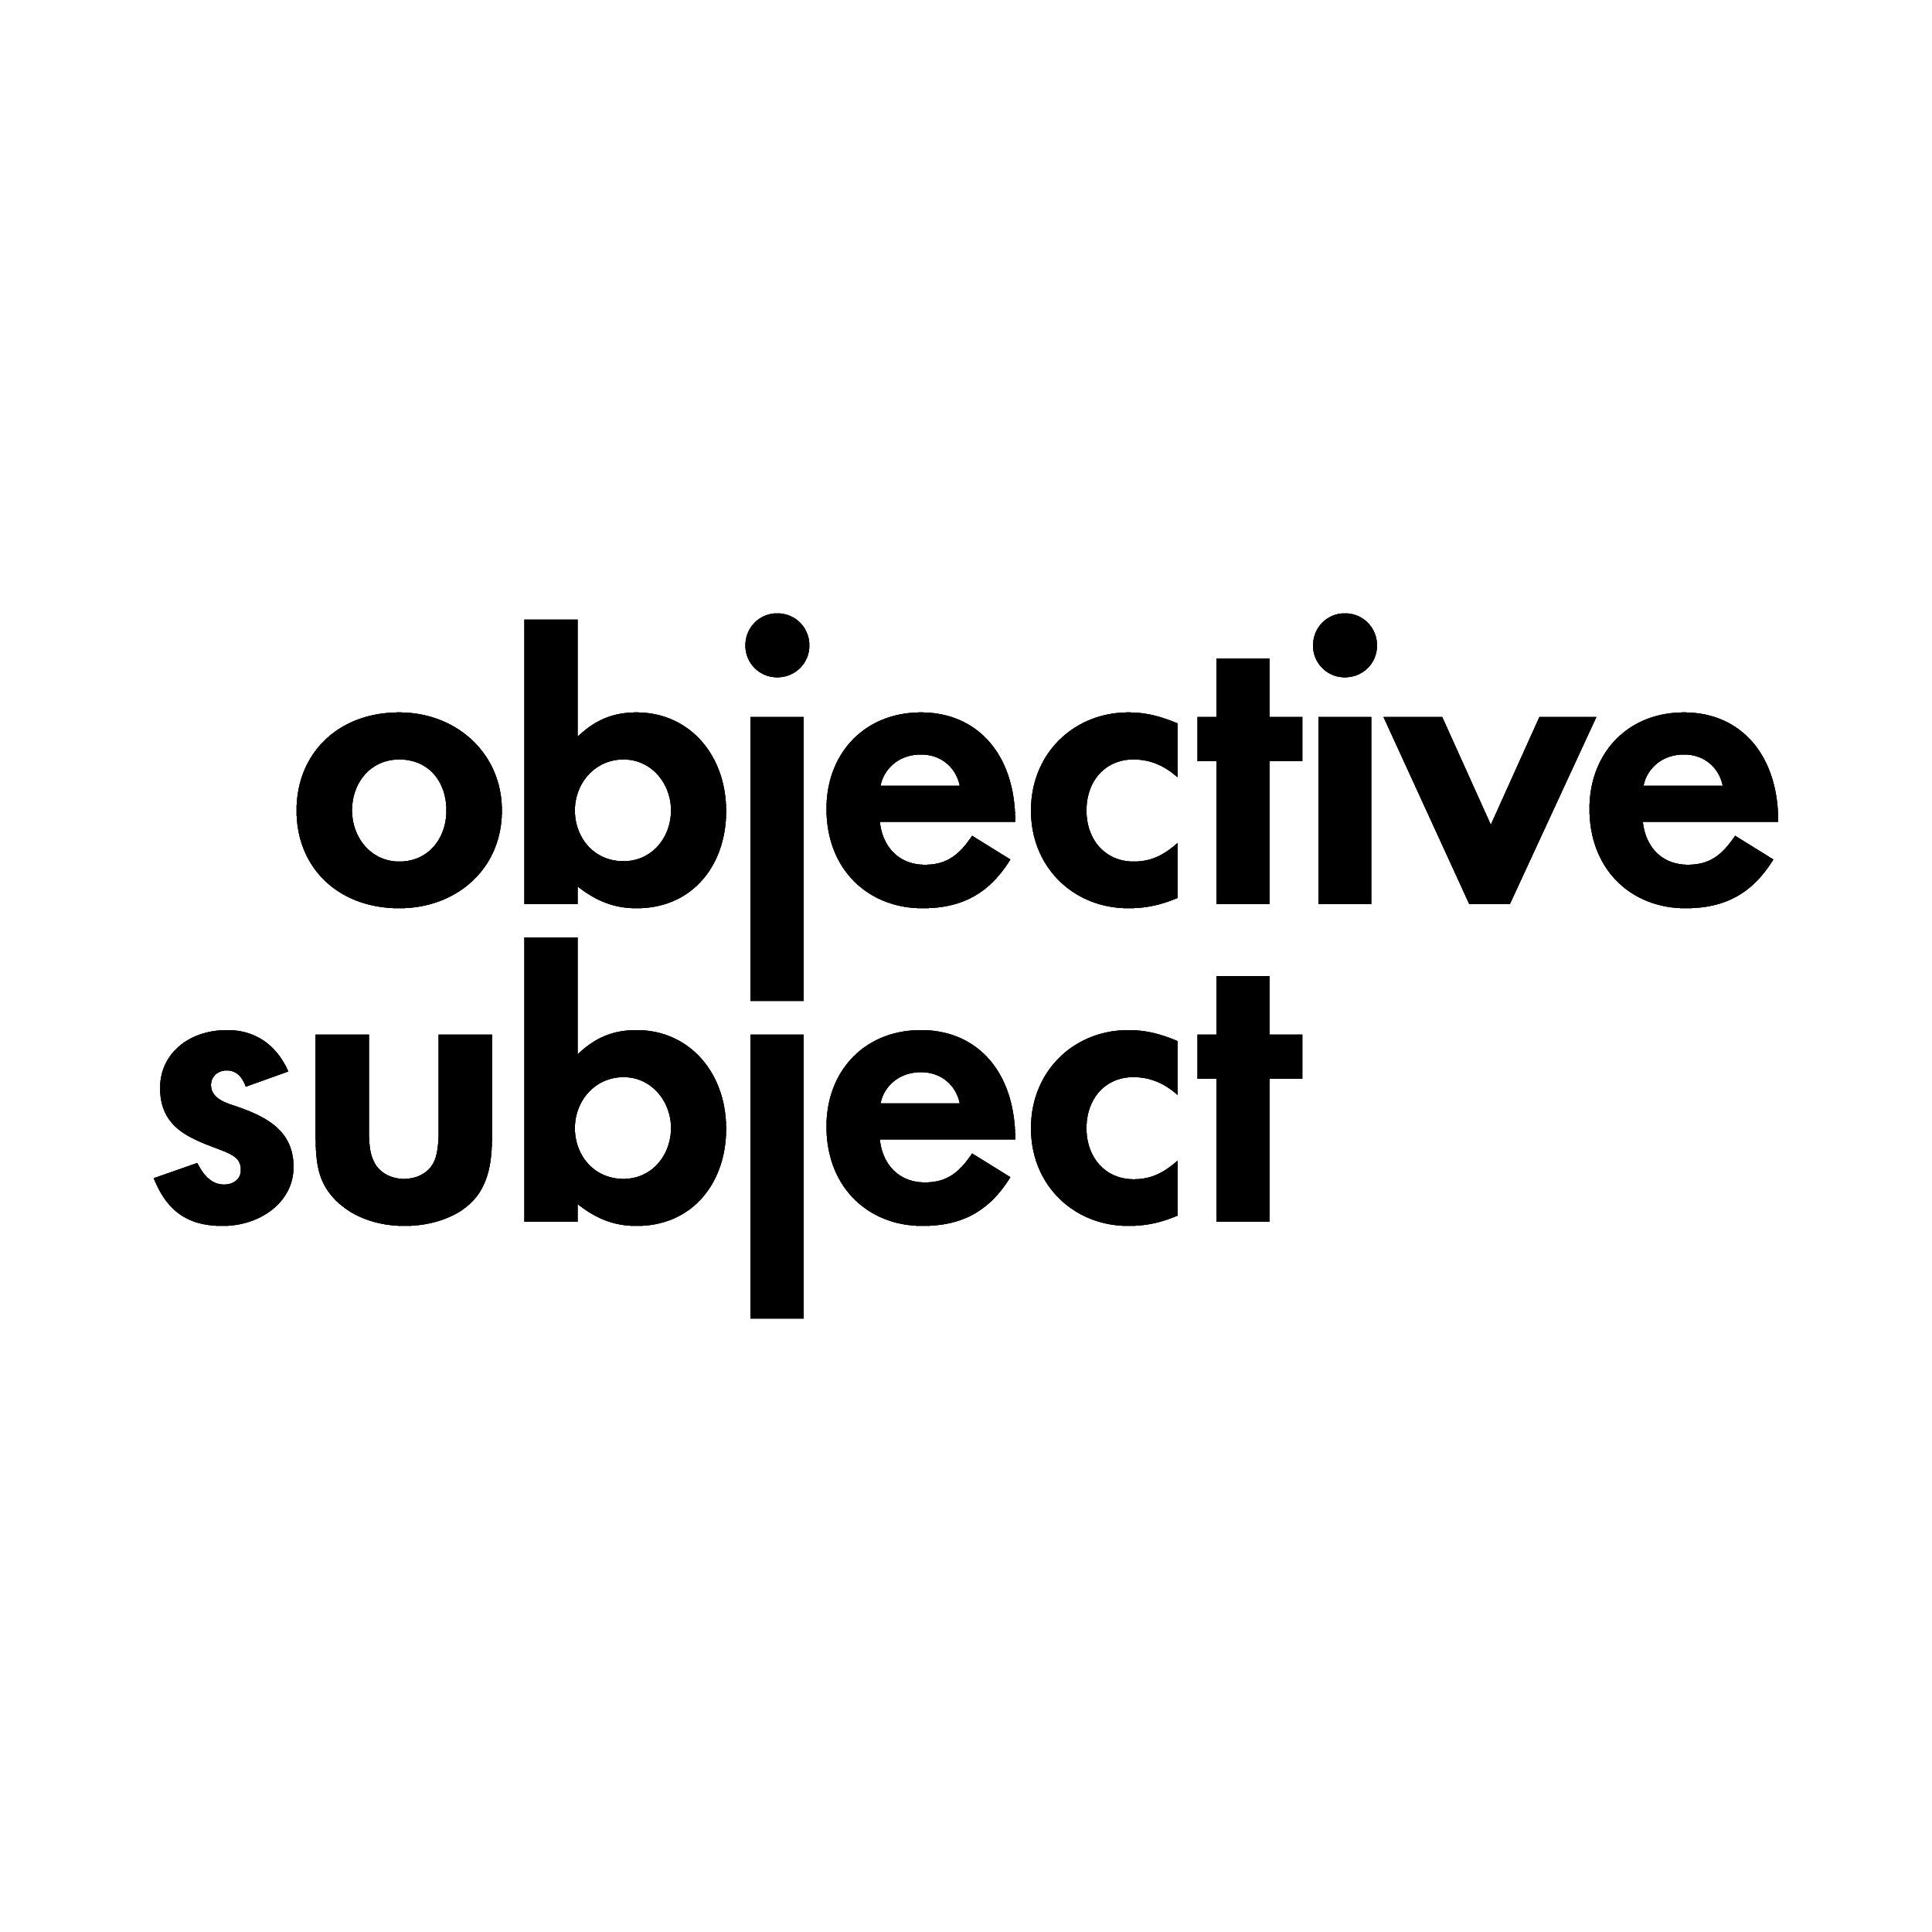 Objective Subject